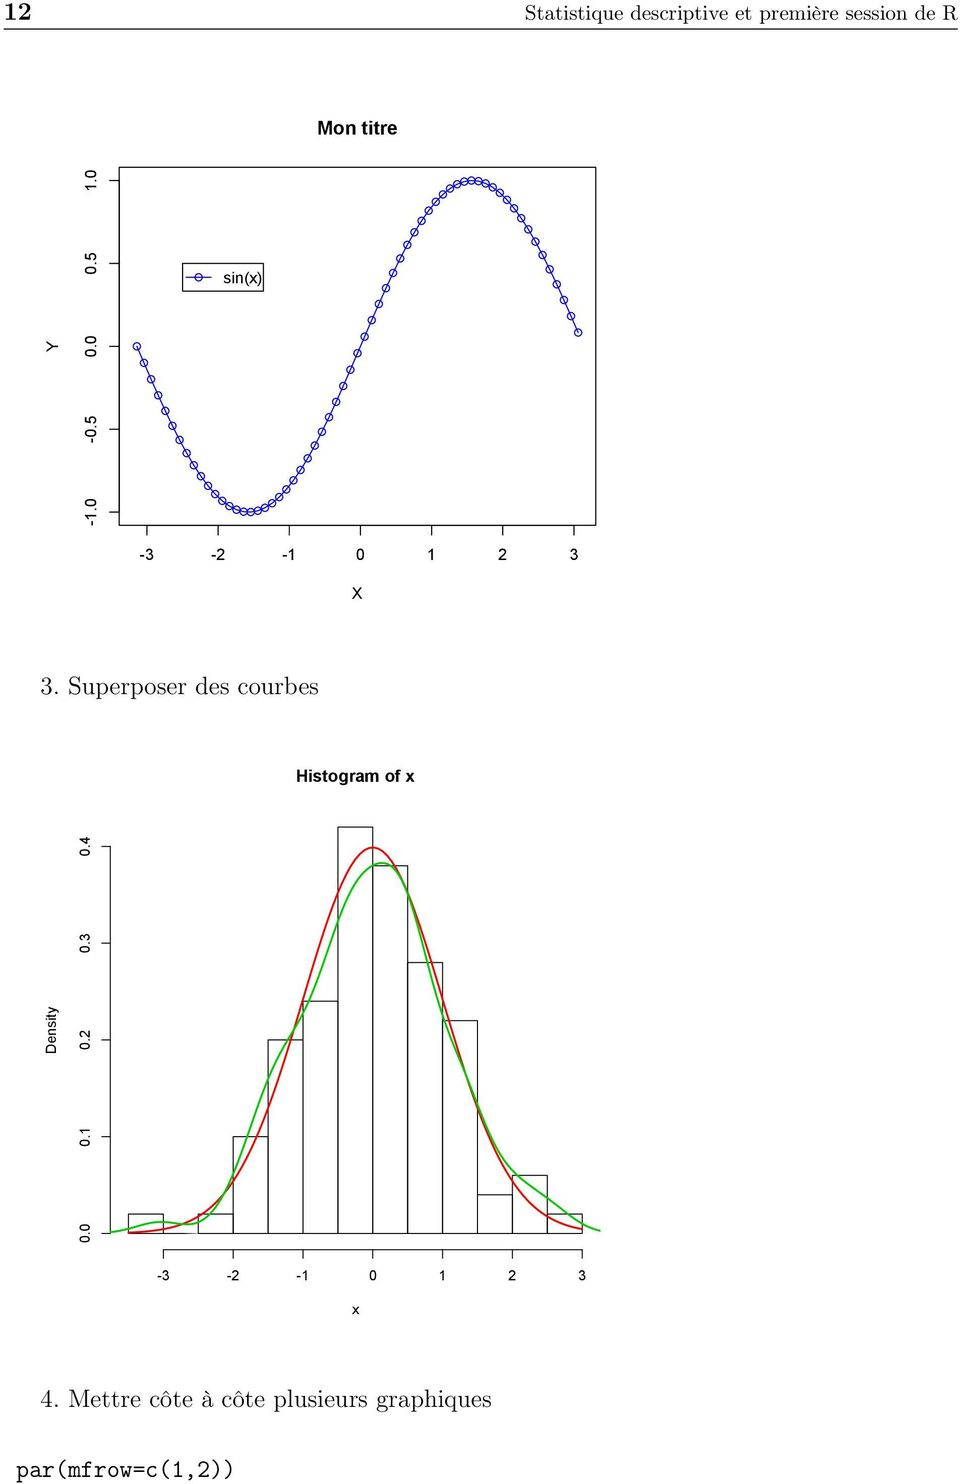 Superposer des courbes Histogram of x Density 0.0 0.1 0.2 0.3 0.